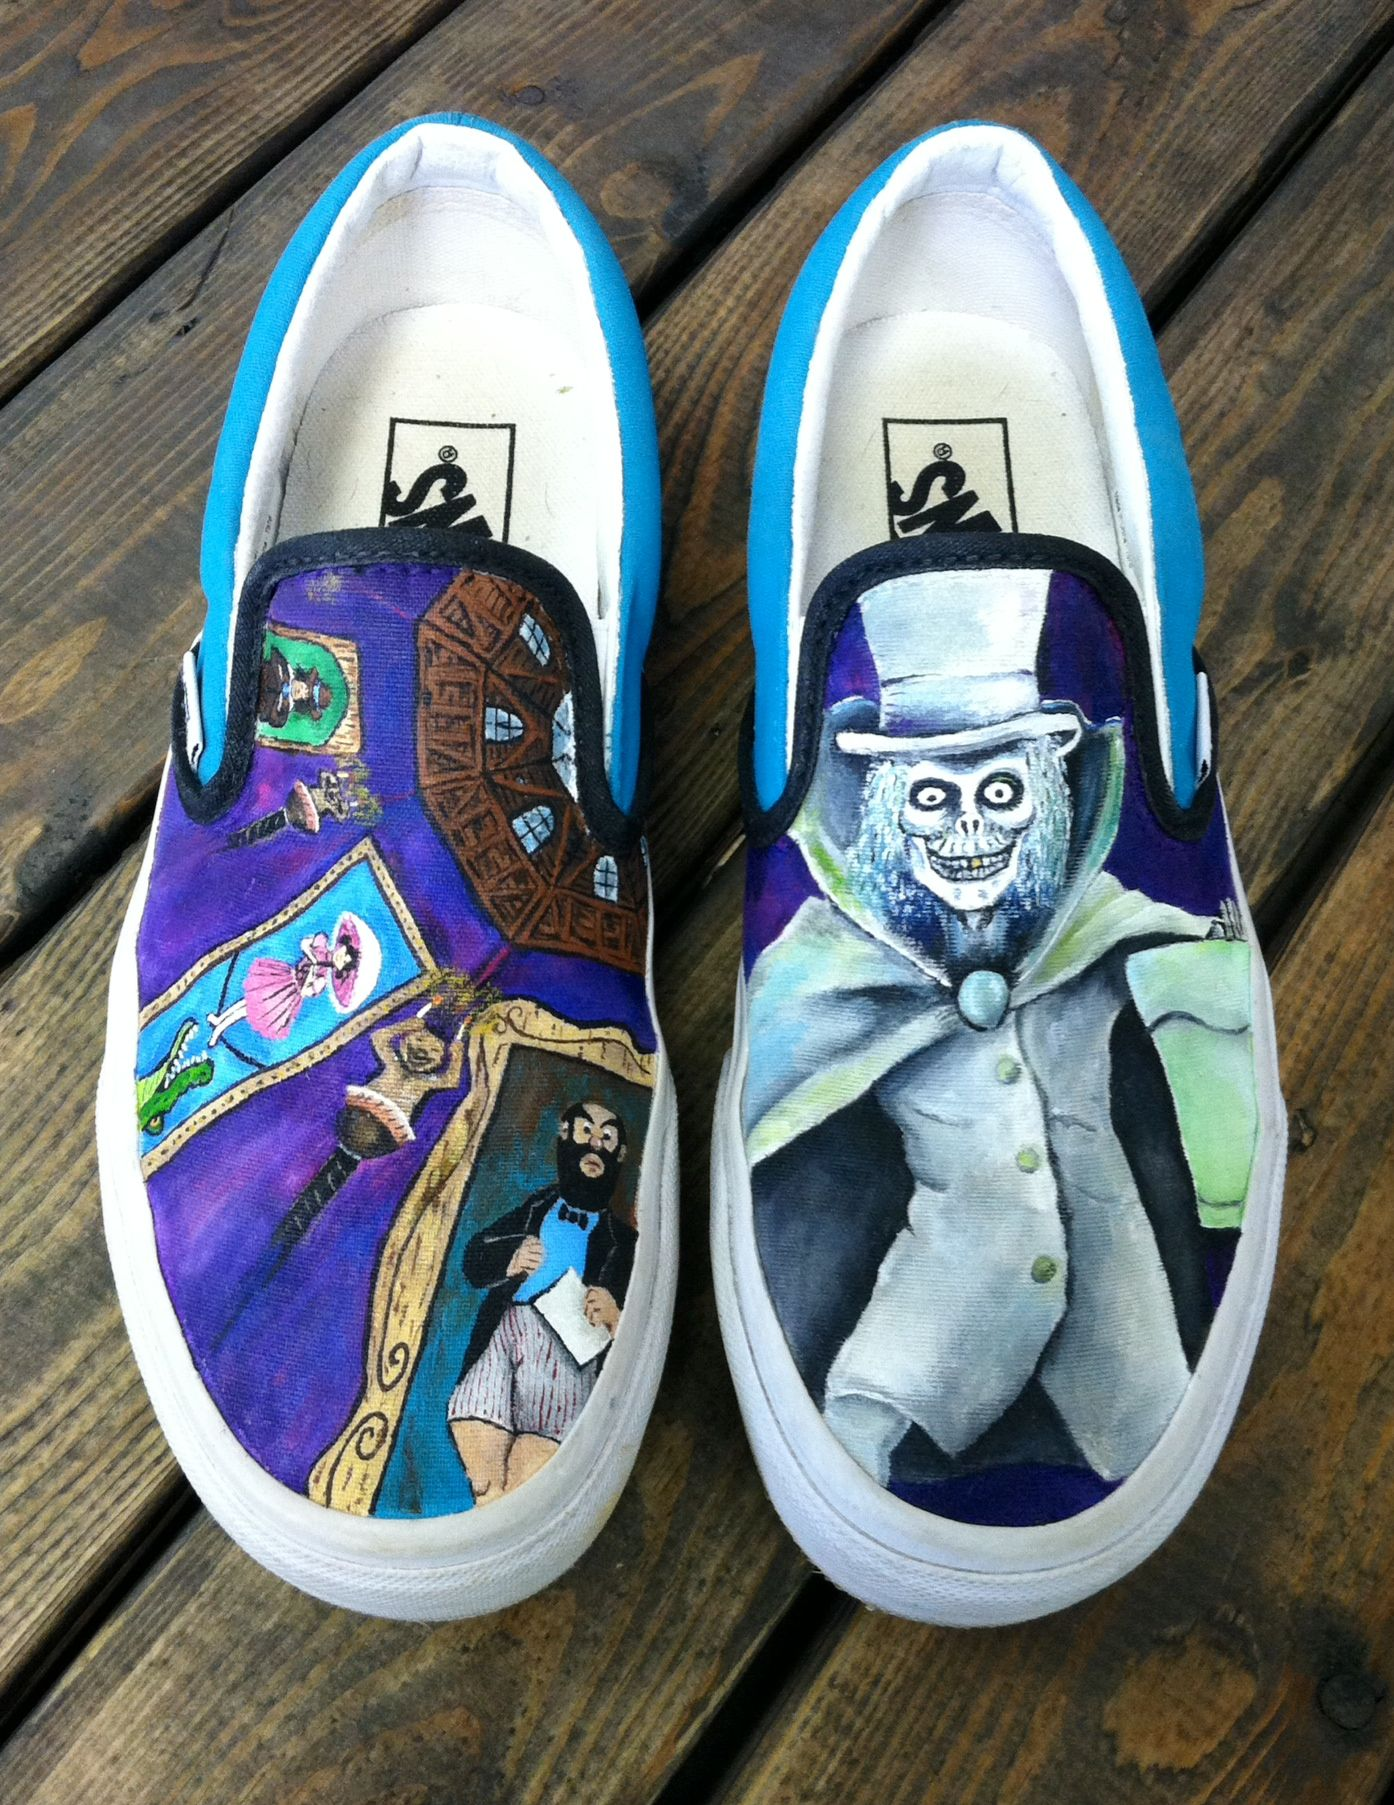 2c2a5d1a7b Disneyland Haunted Mansion Hatbox Ghost Painted Vans Shoes - https   www. etsy